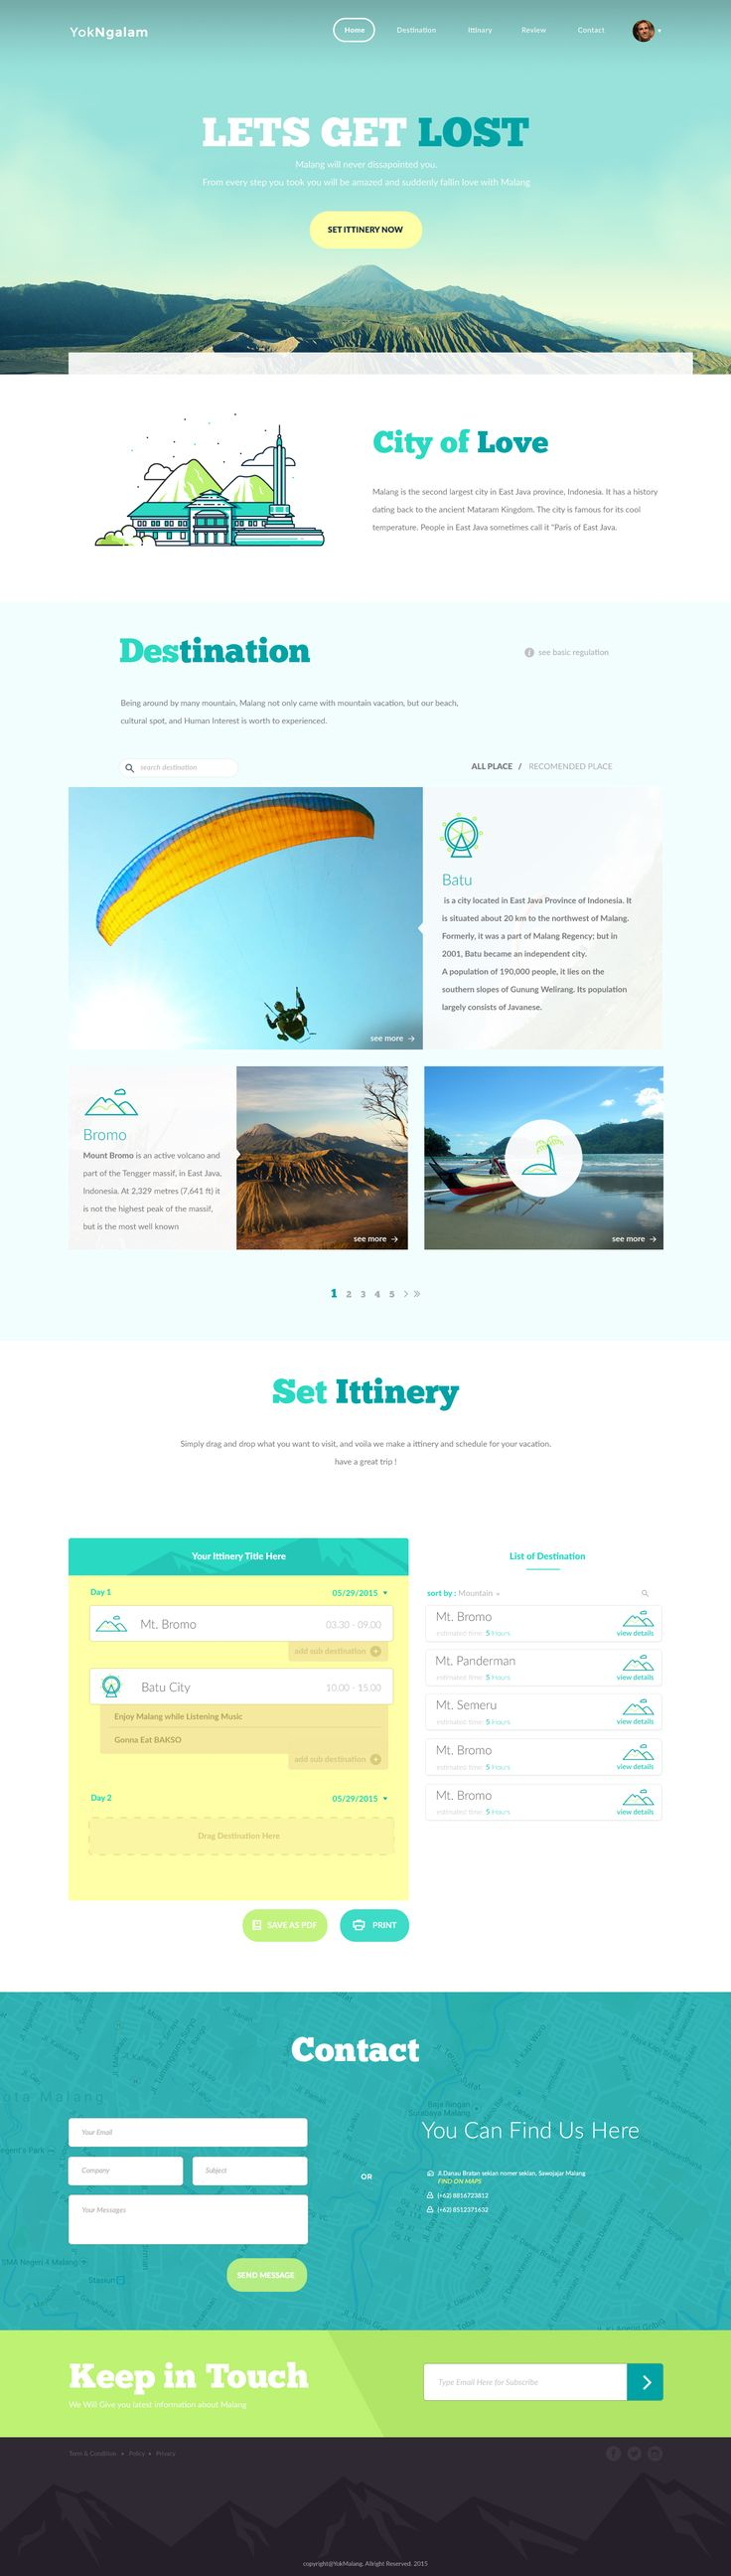 Yok Ngalam. Let's get lost in this beautiful site. #webdesign #design